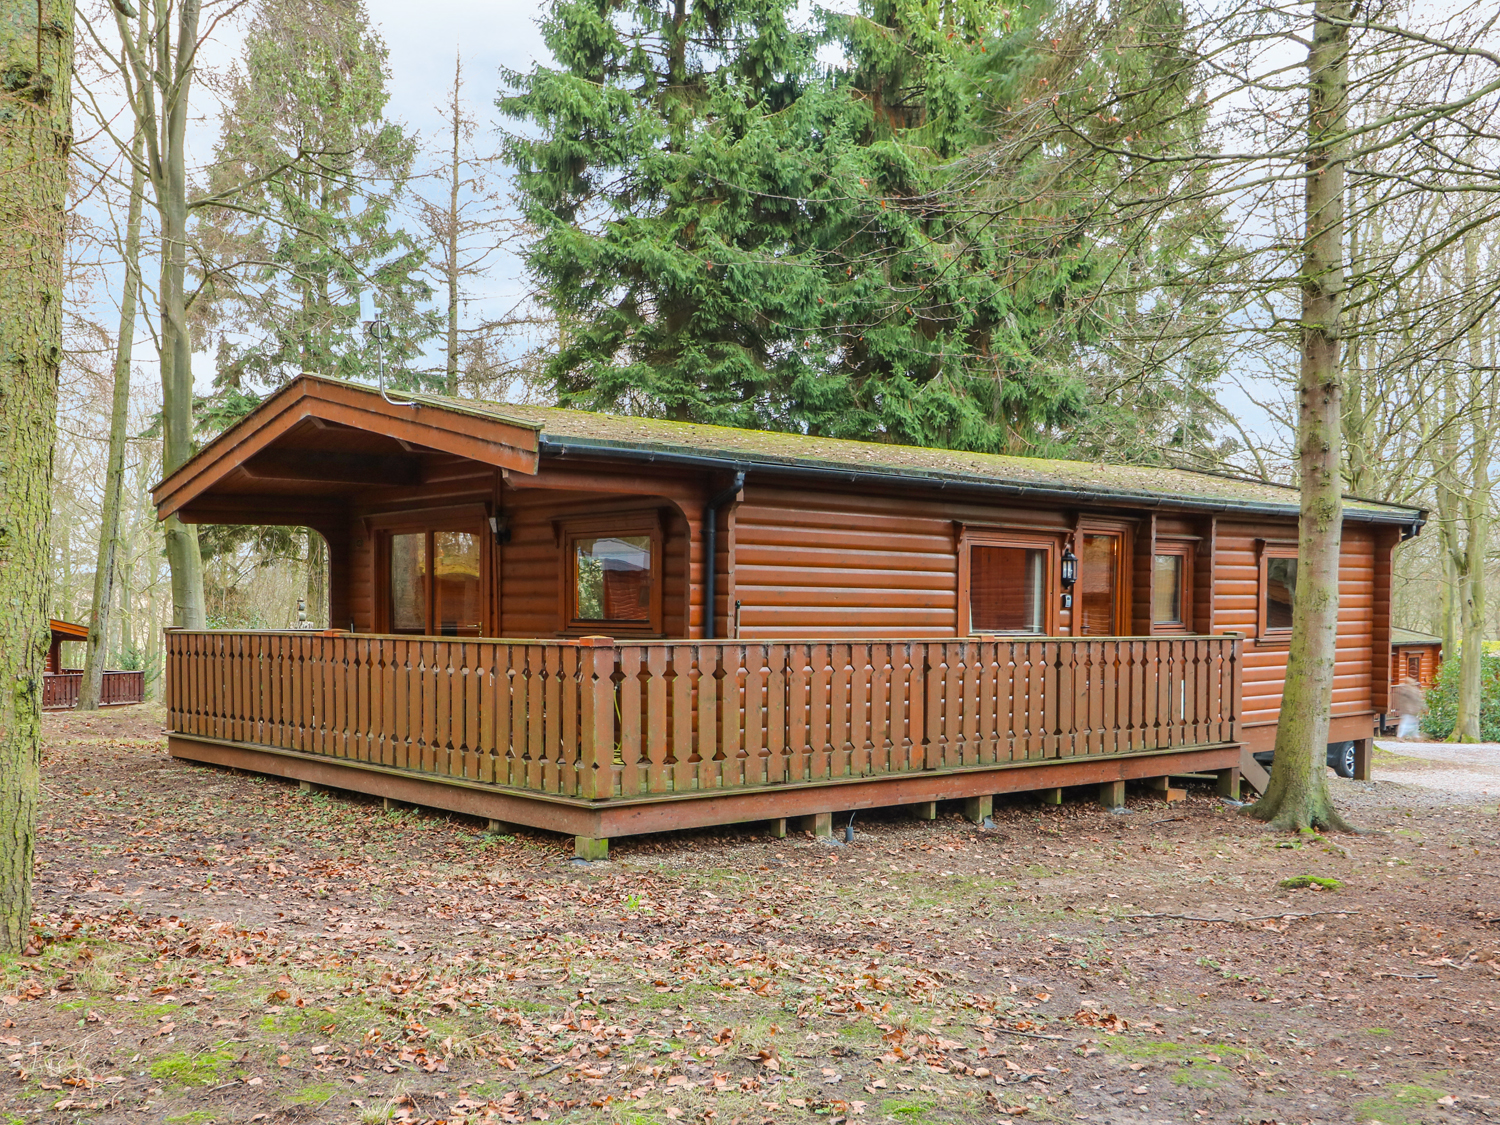 45 The Woods, Lincolnshire